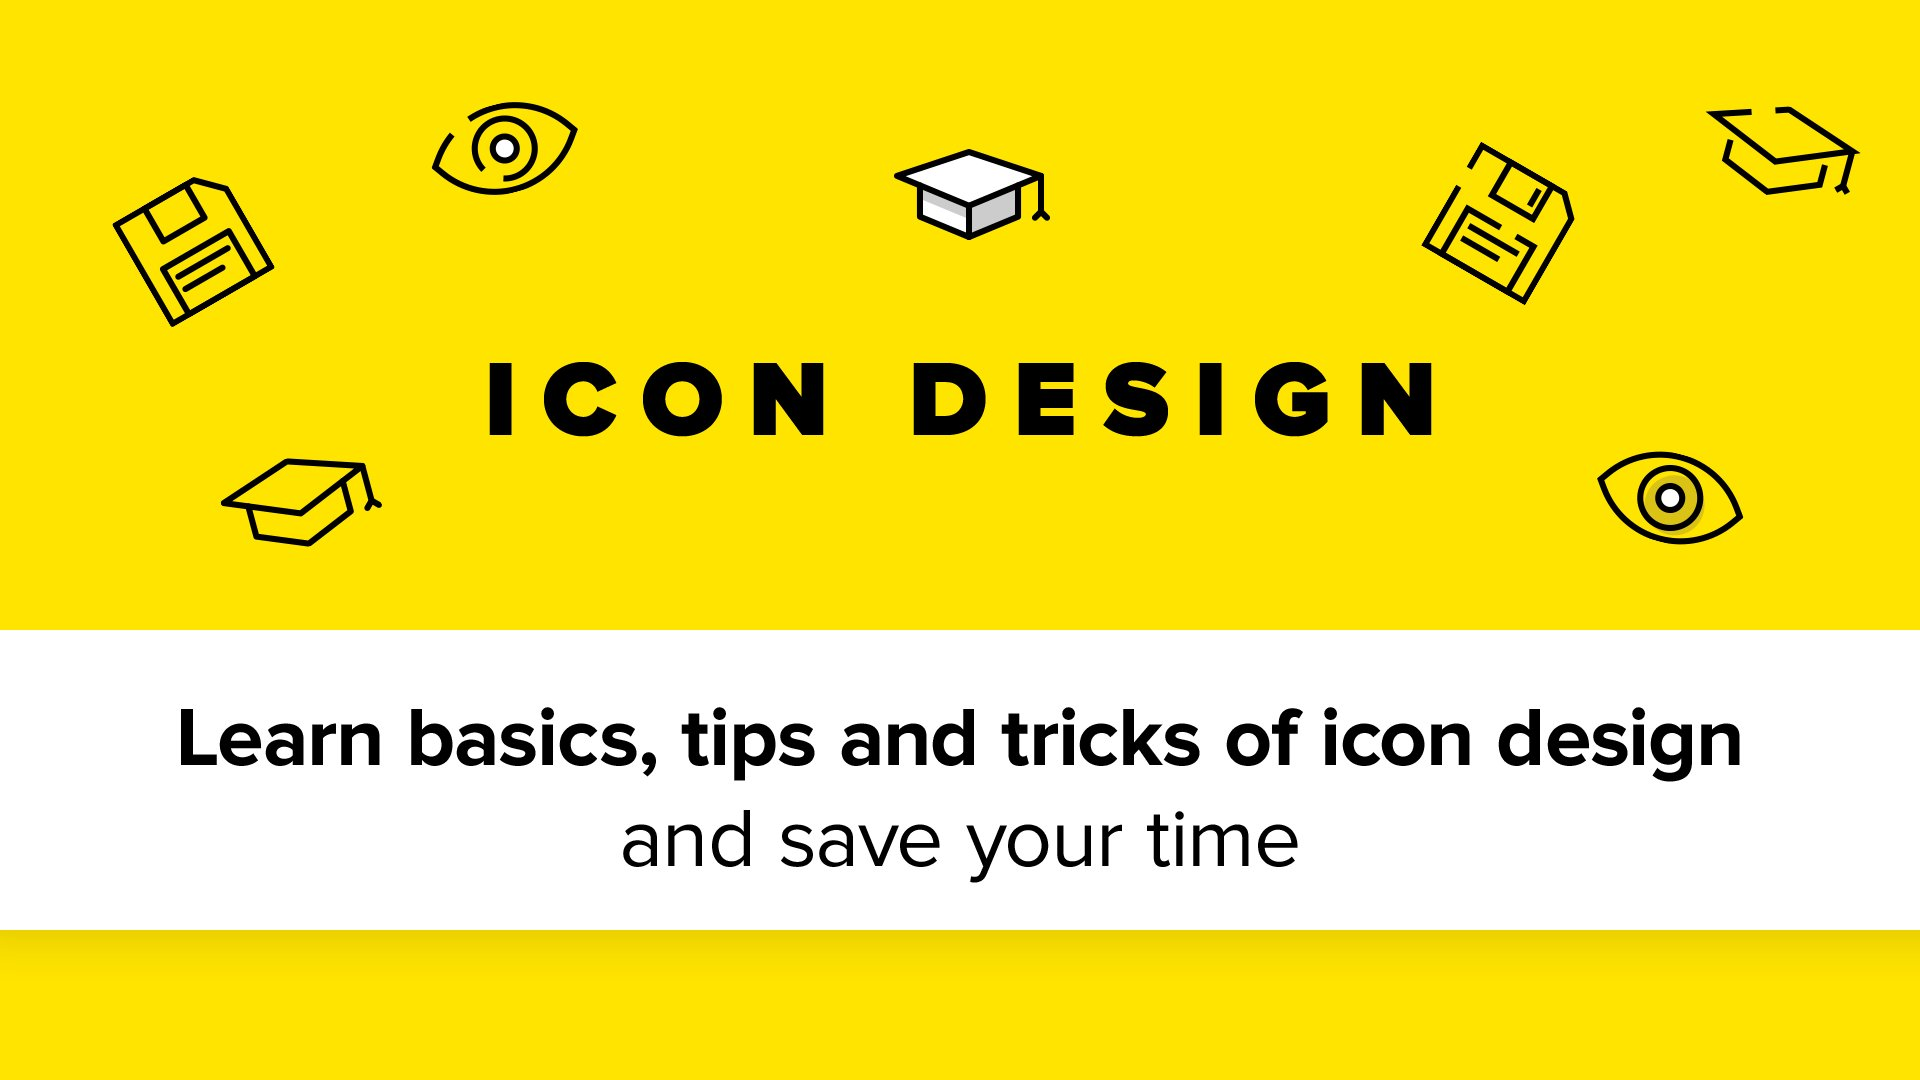 Learn basics, tips and tricks of icon design and save your time